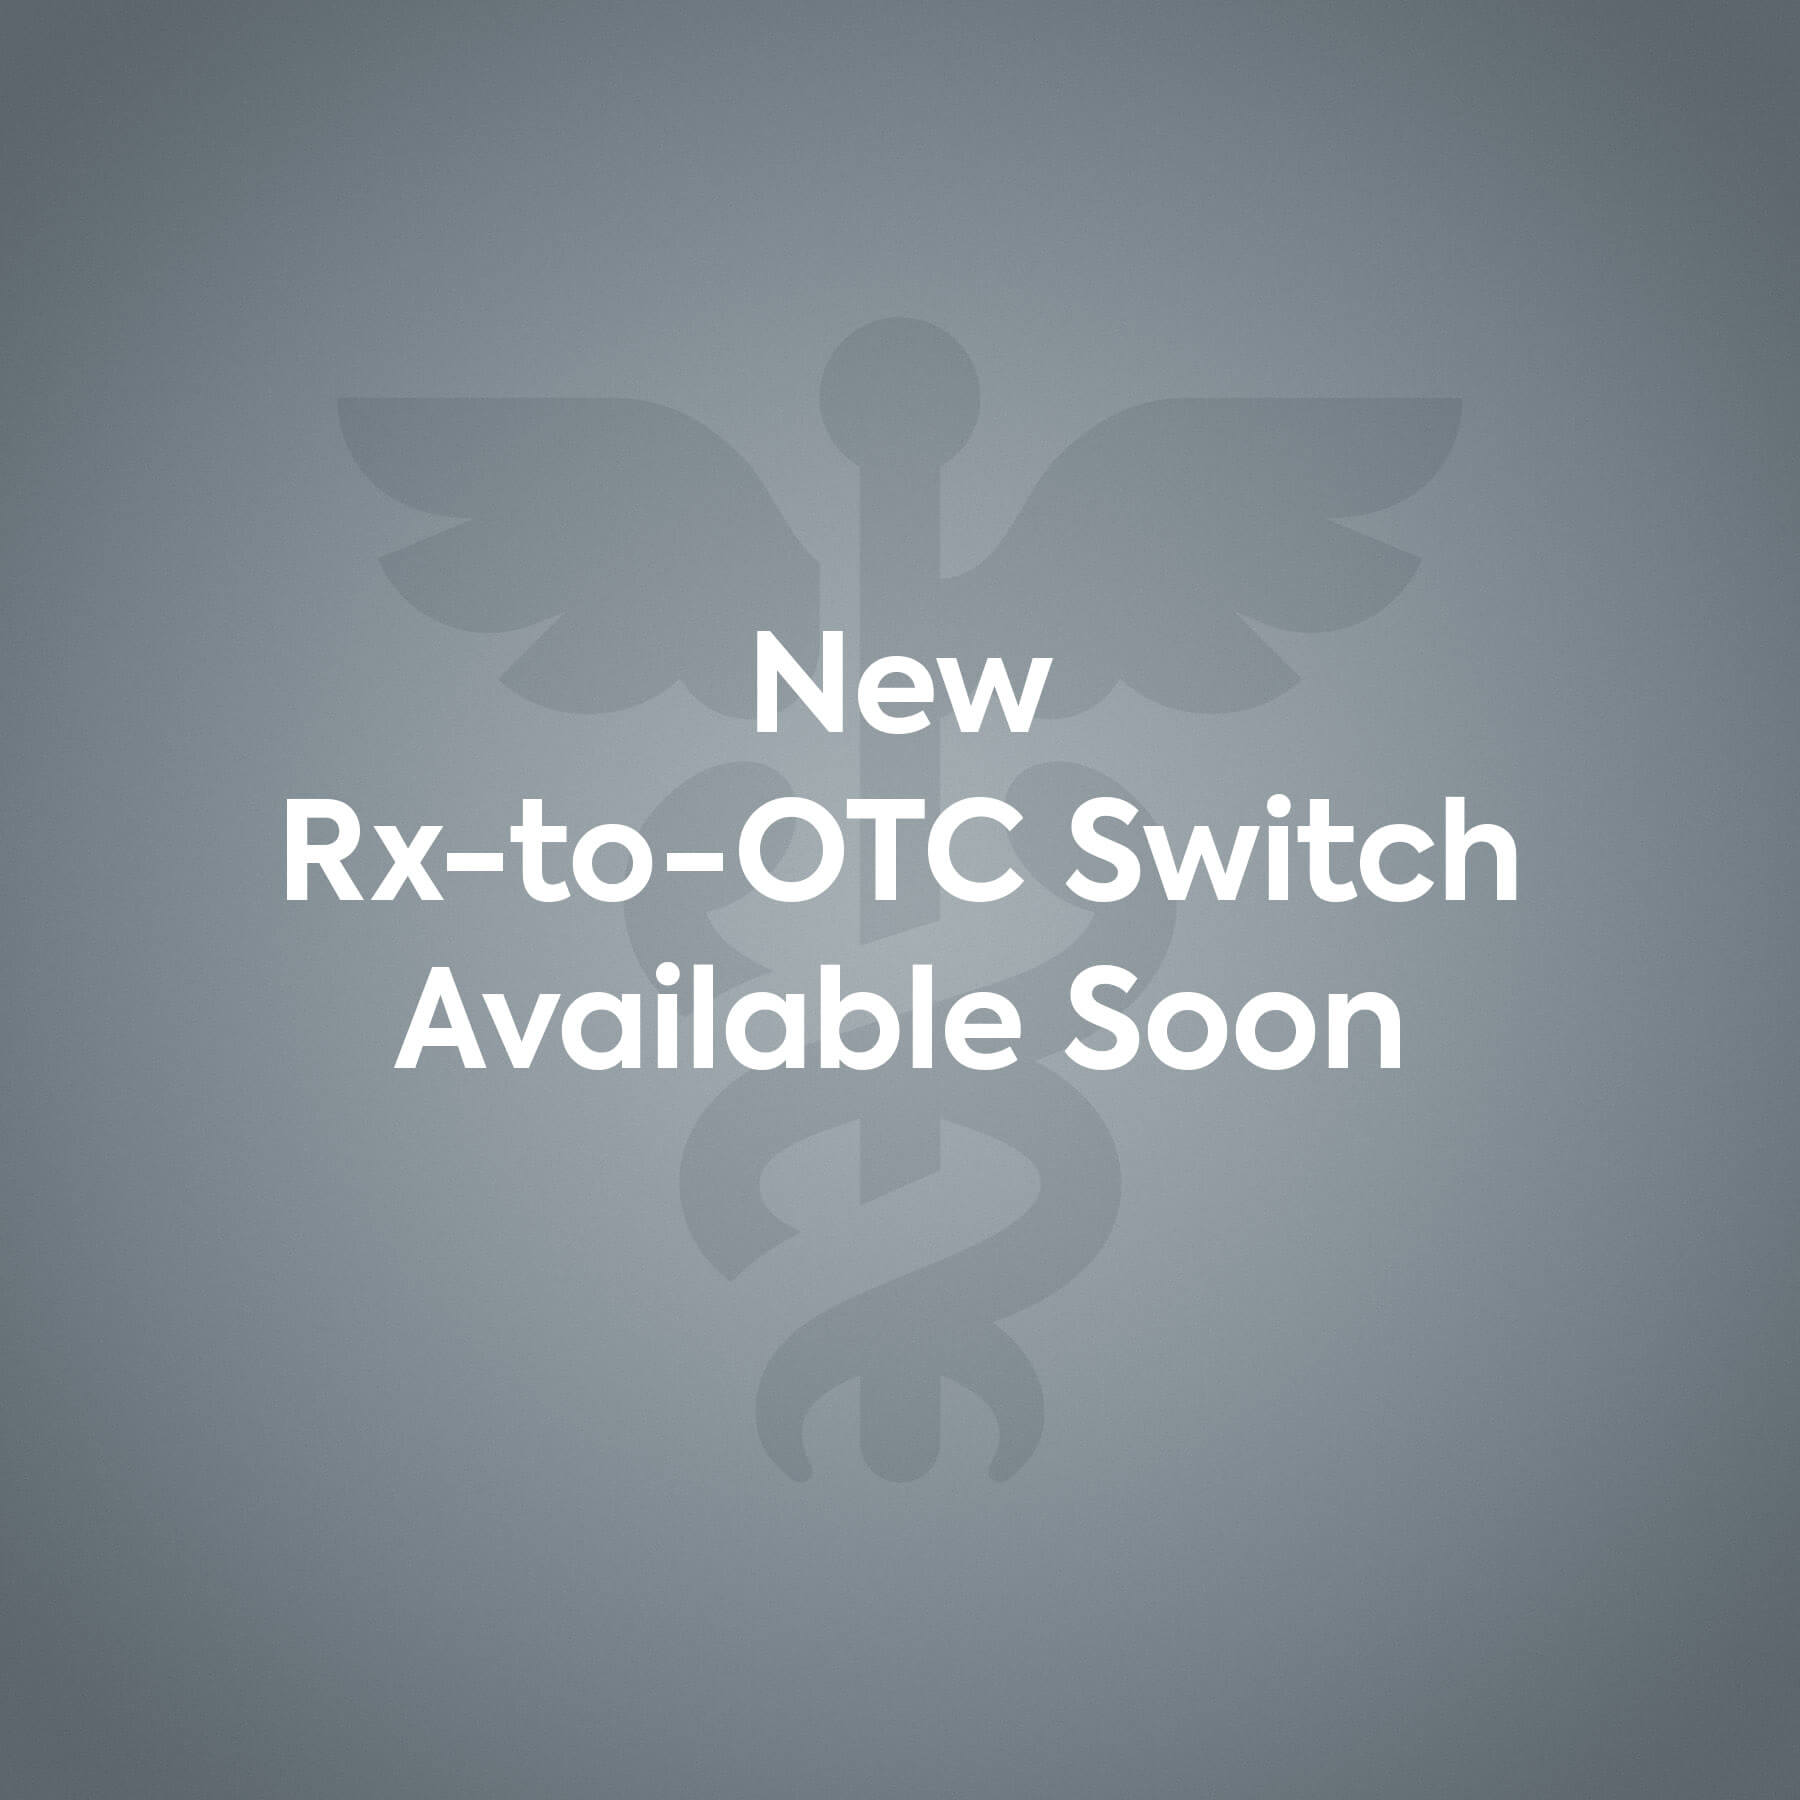 RiVive New Rx-to-OTC Switch Available Soon